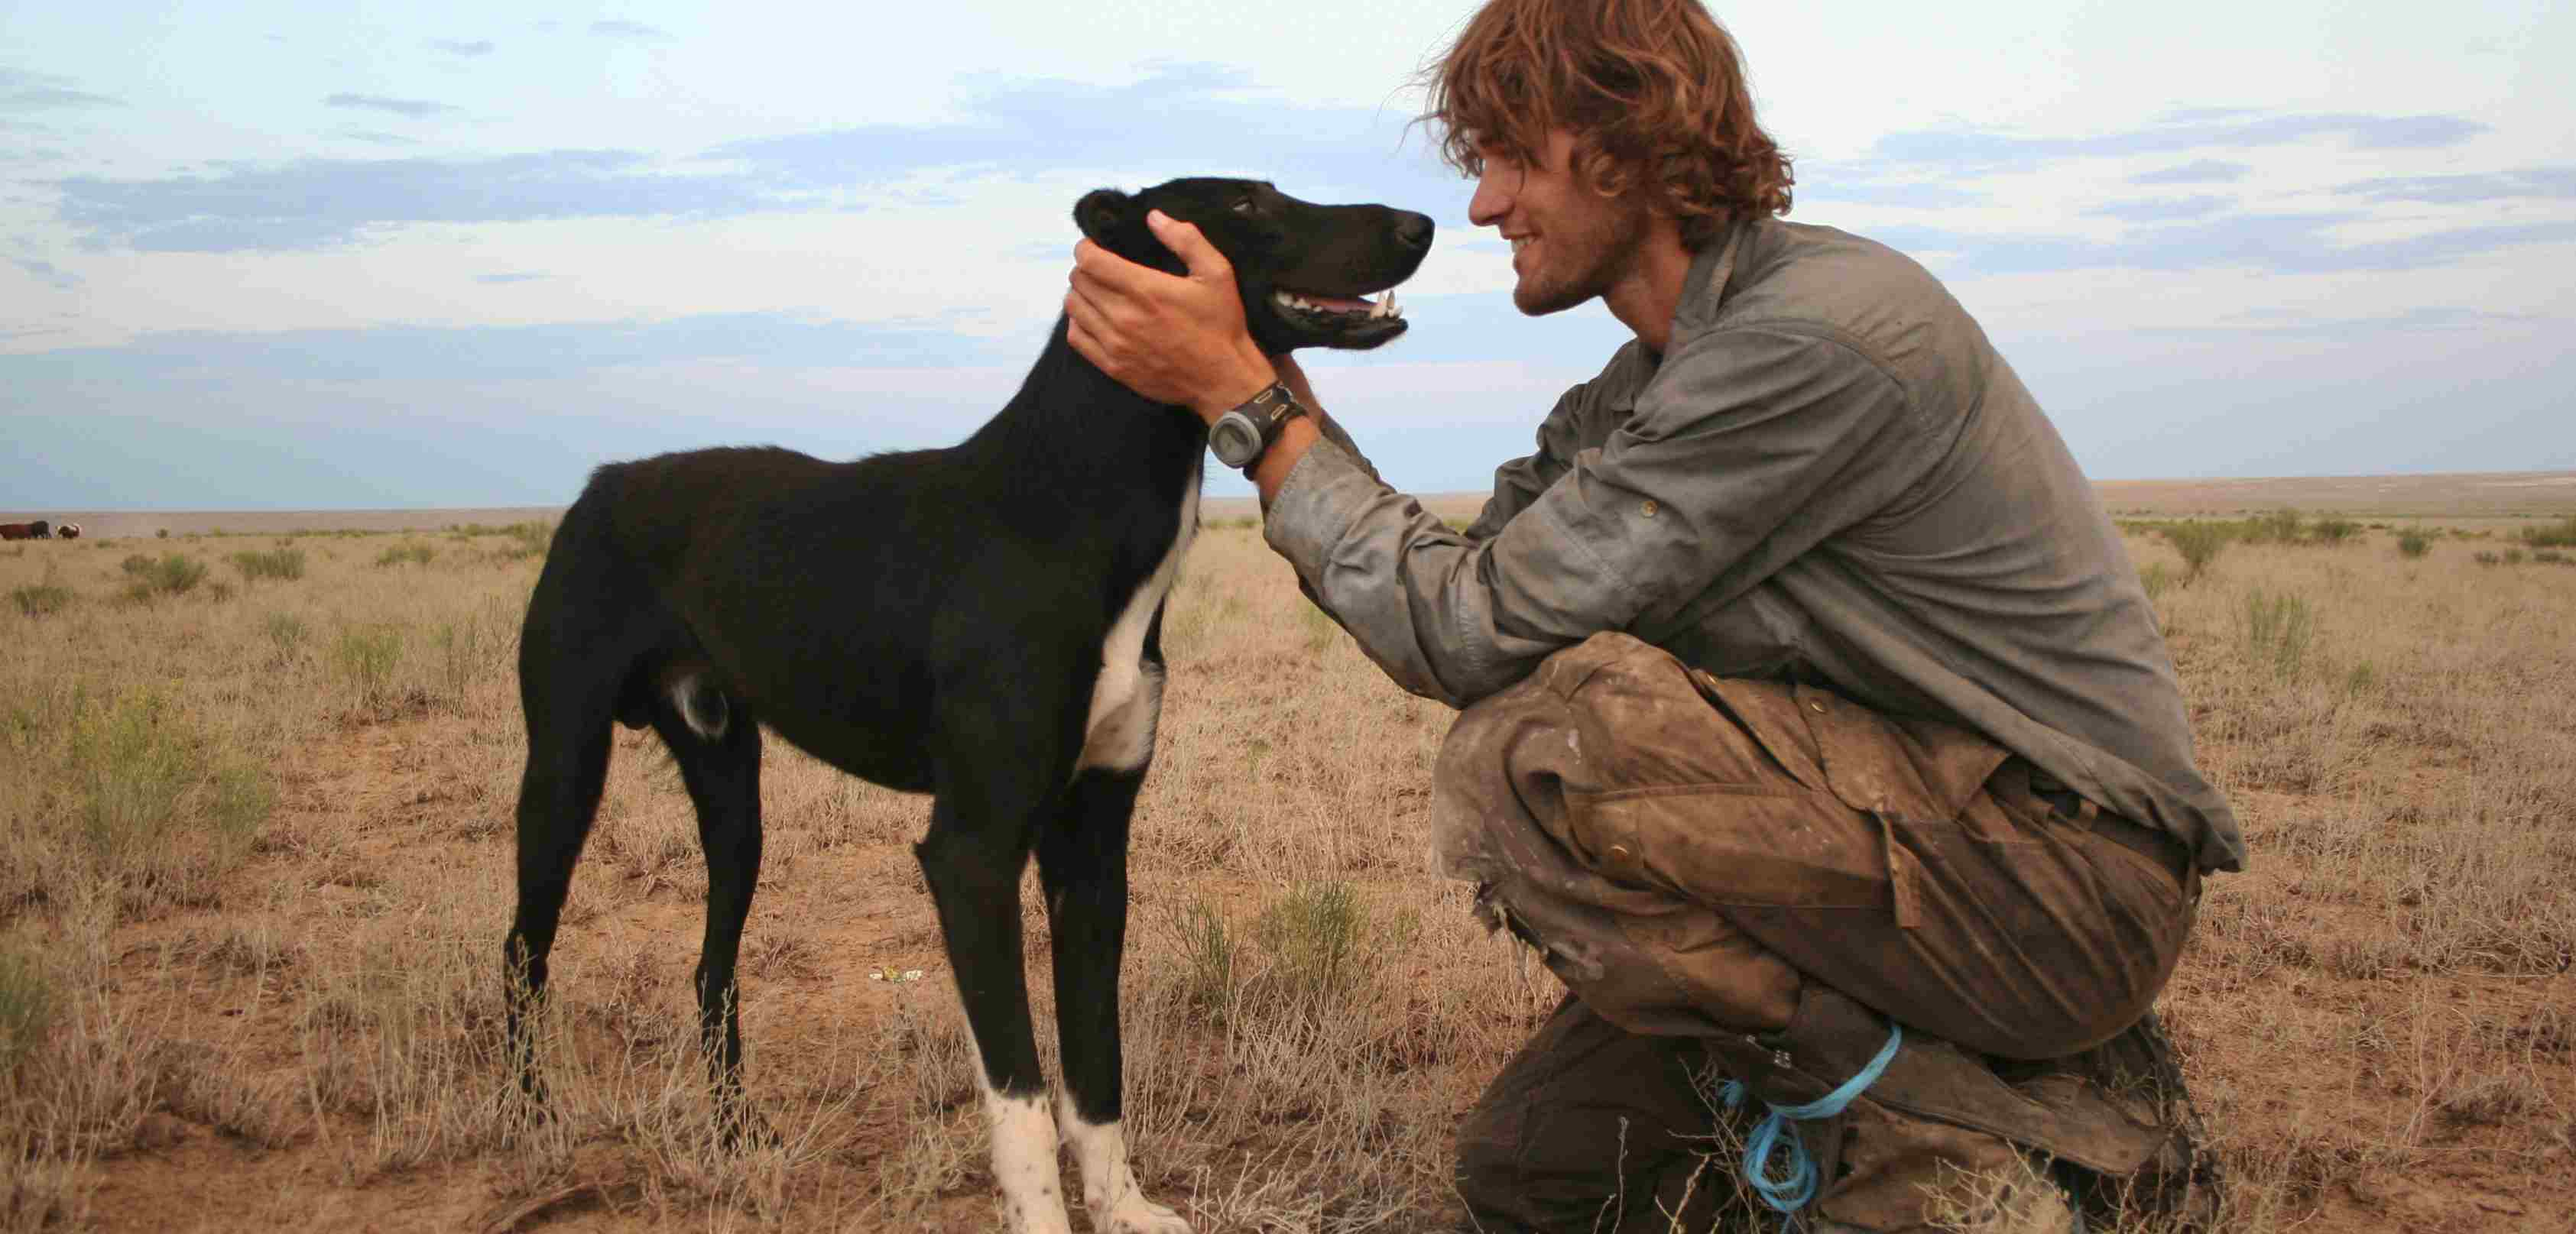 Photograph of Tim Cope and his dog Tigon